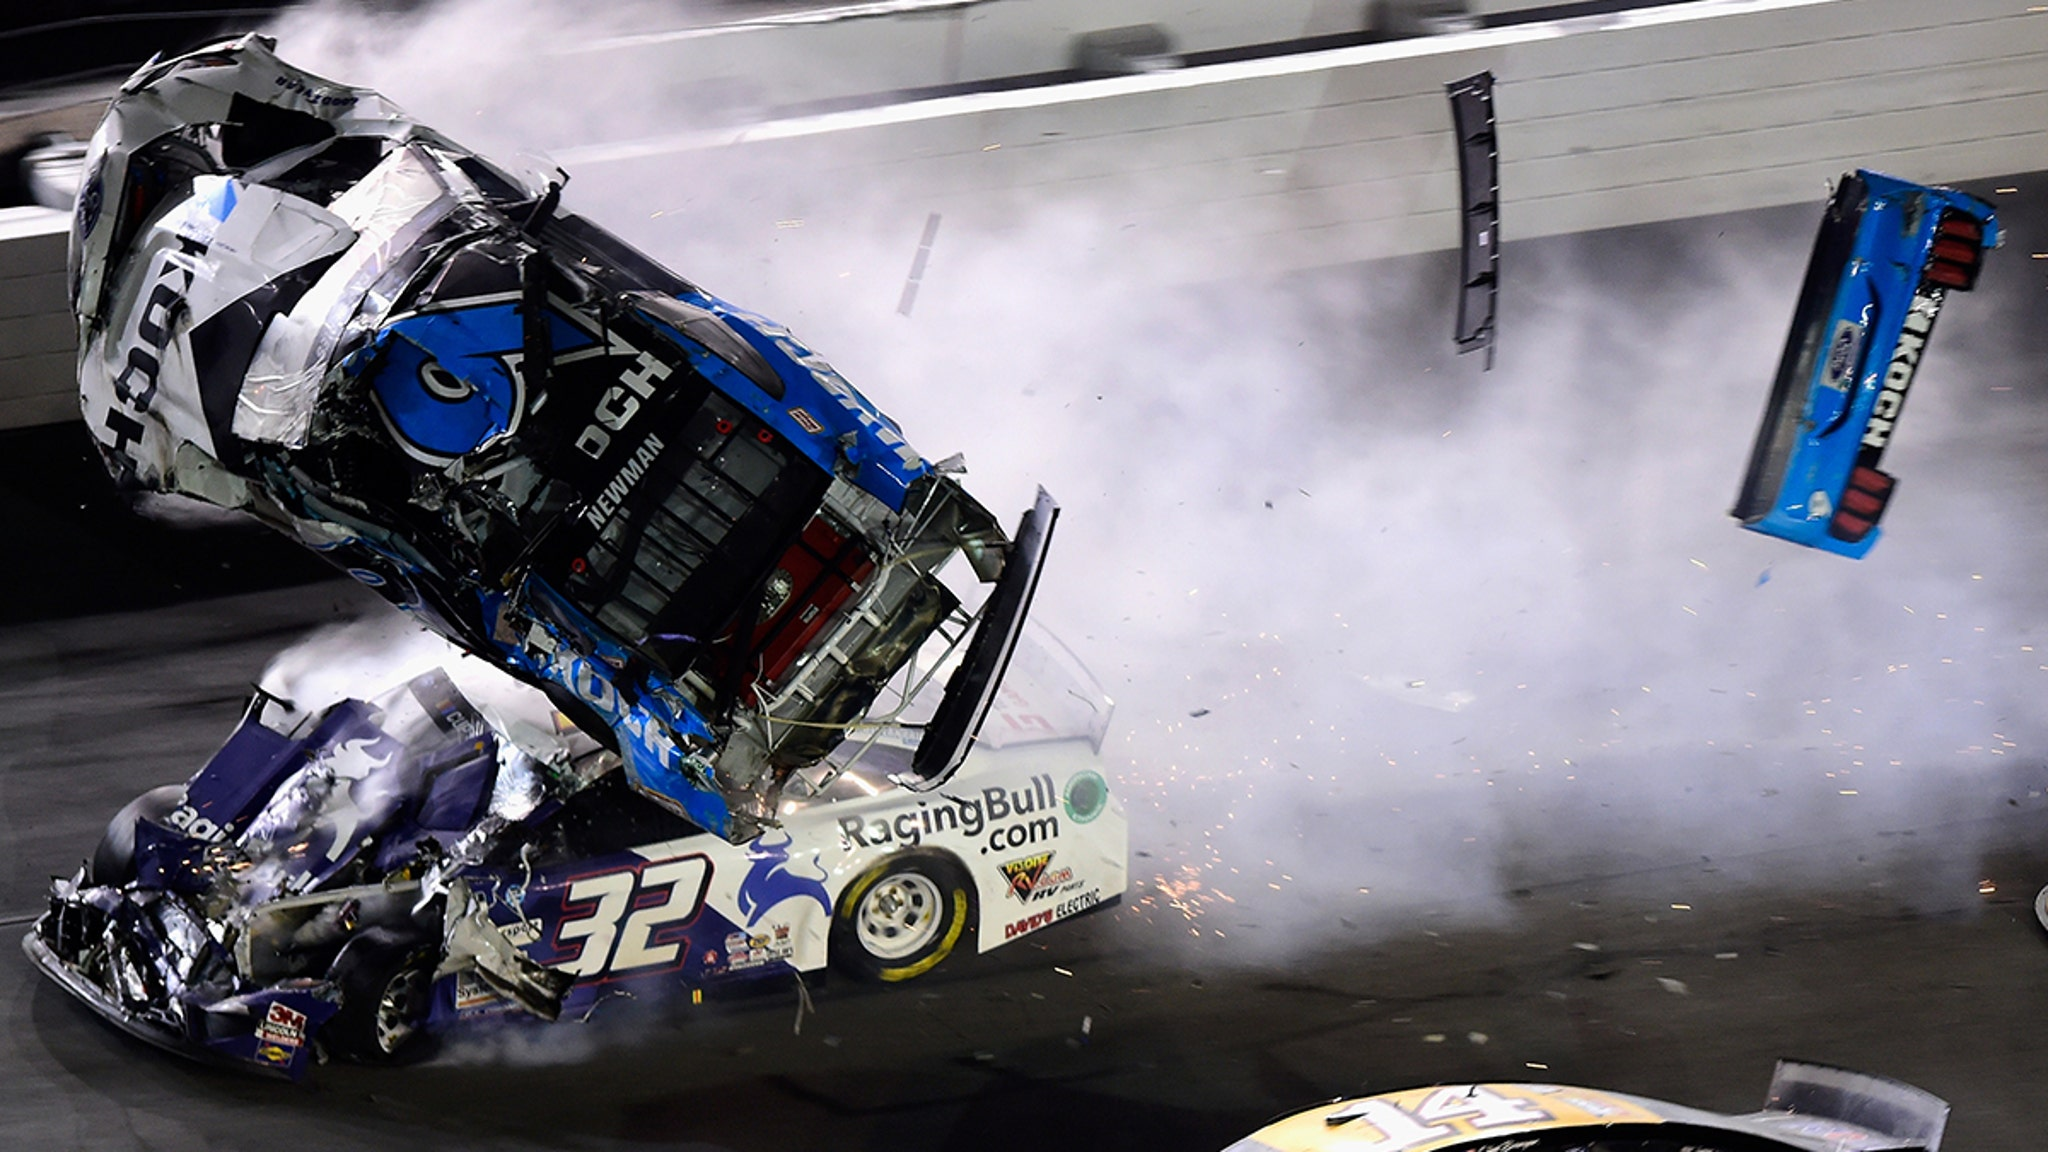 NASCAR's Ryan Newman Hospitalized After Scary Crash At Daytona 500